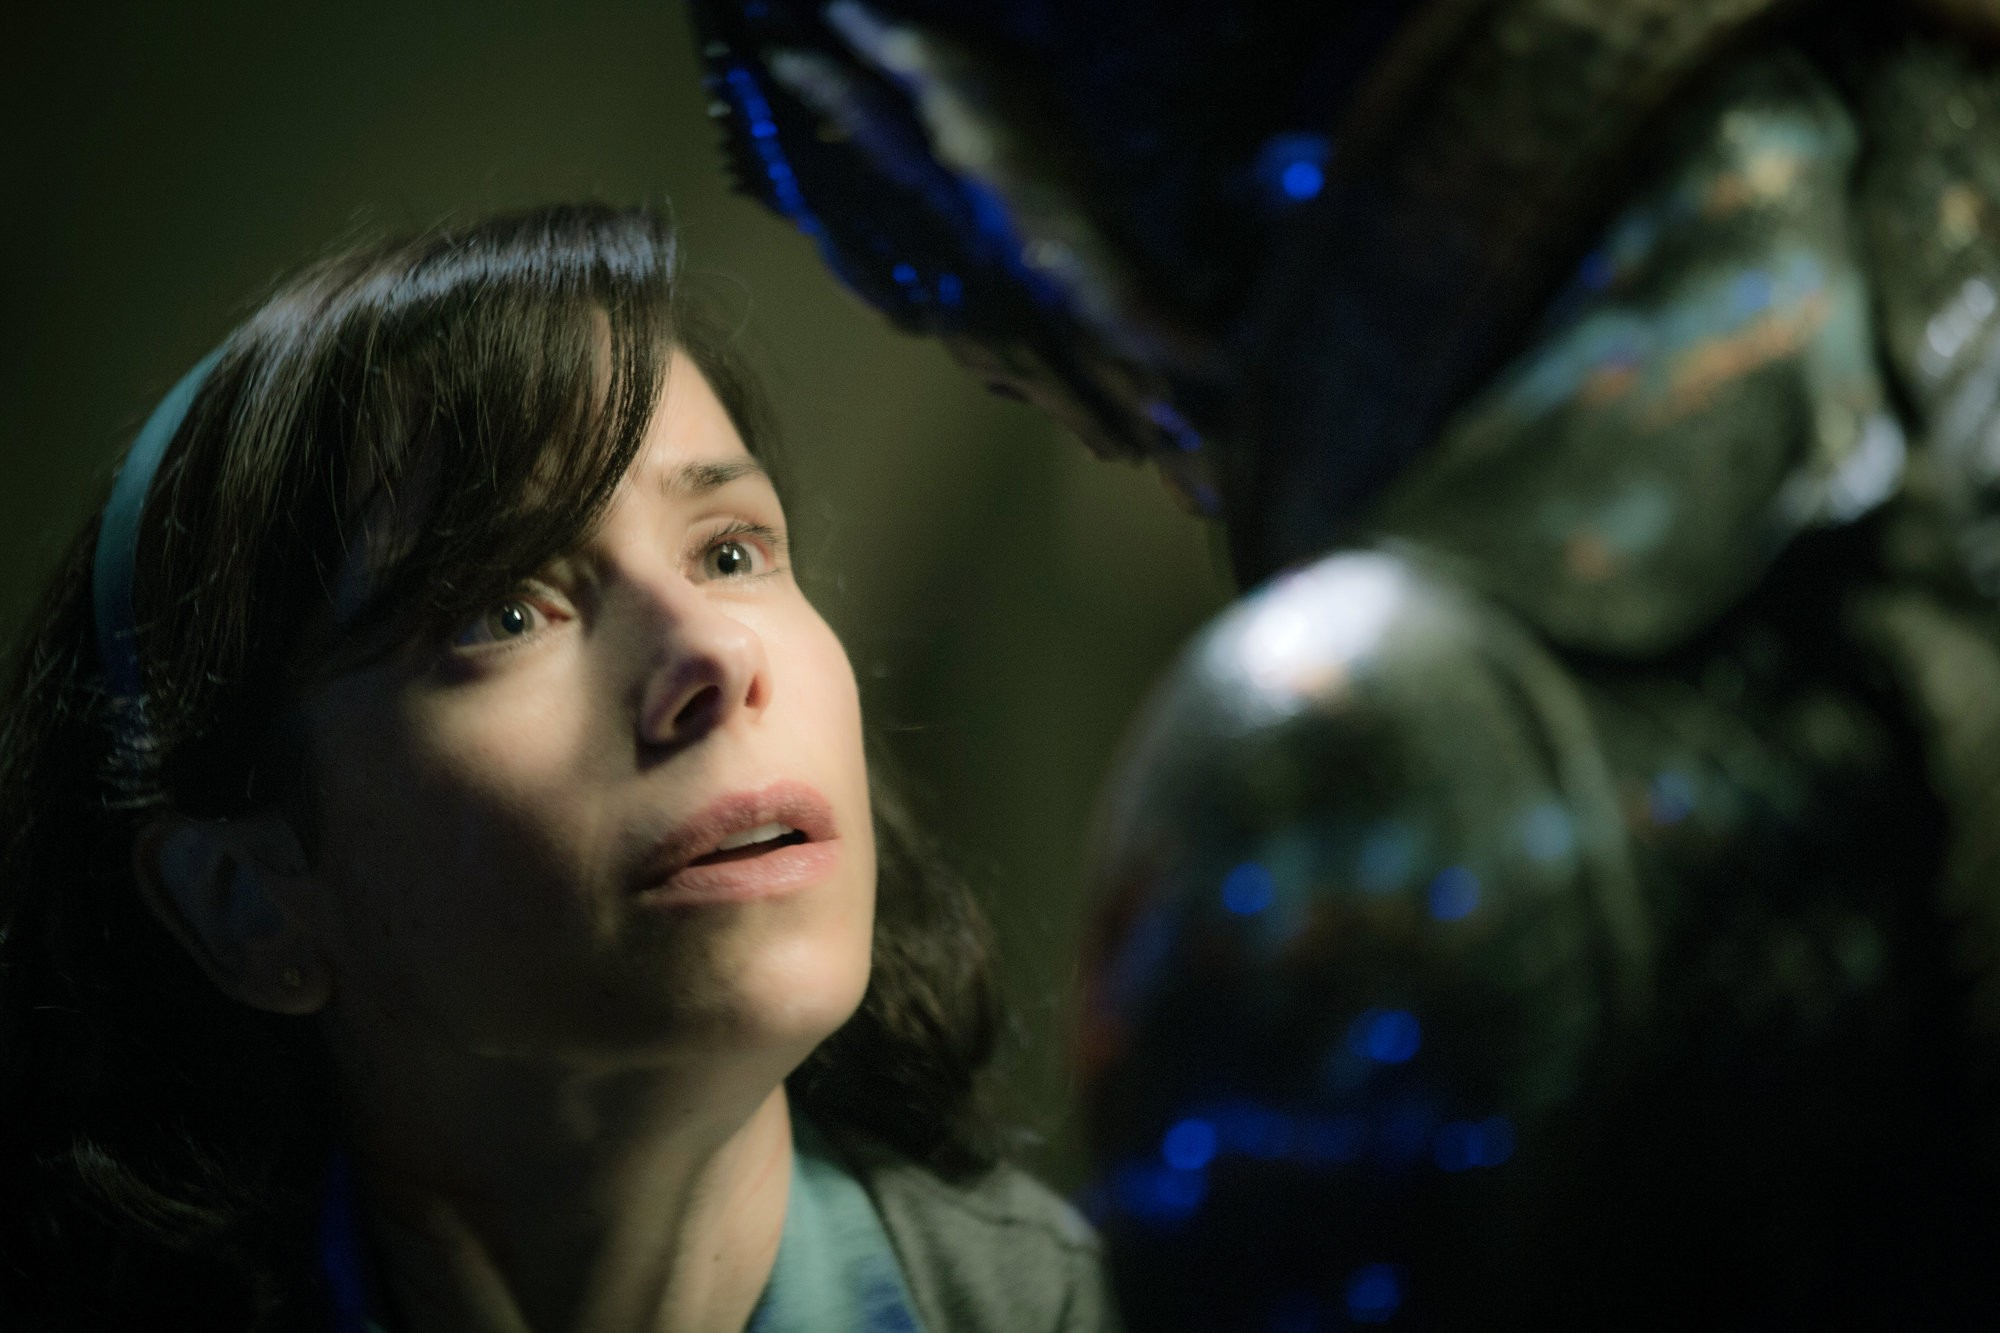 Large the shape of water st 4 jpg sd high   2017 twentieth century fox film corporation all rights reserved